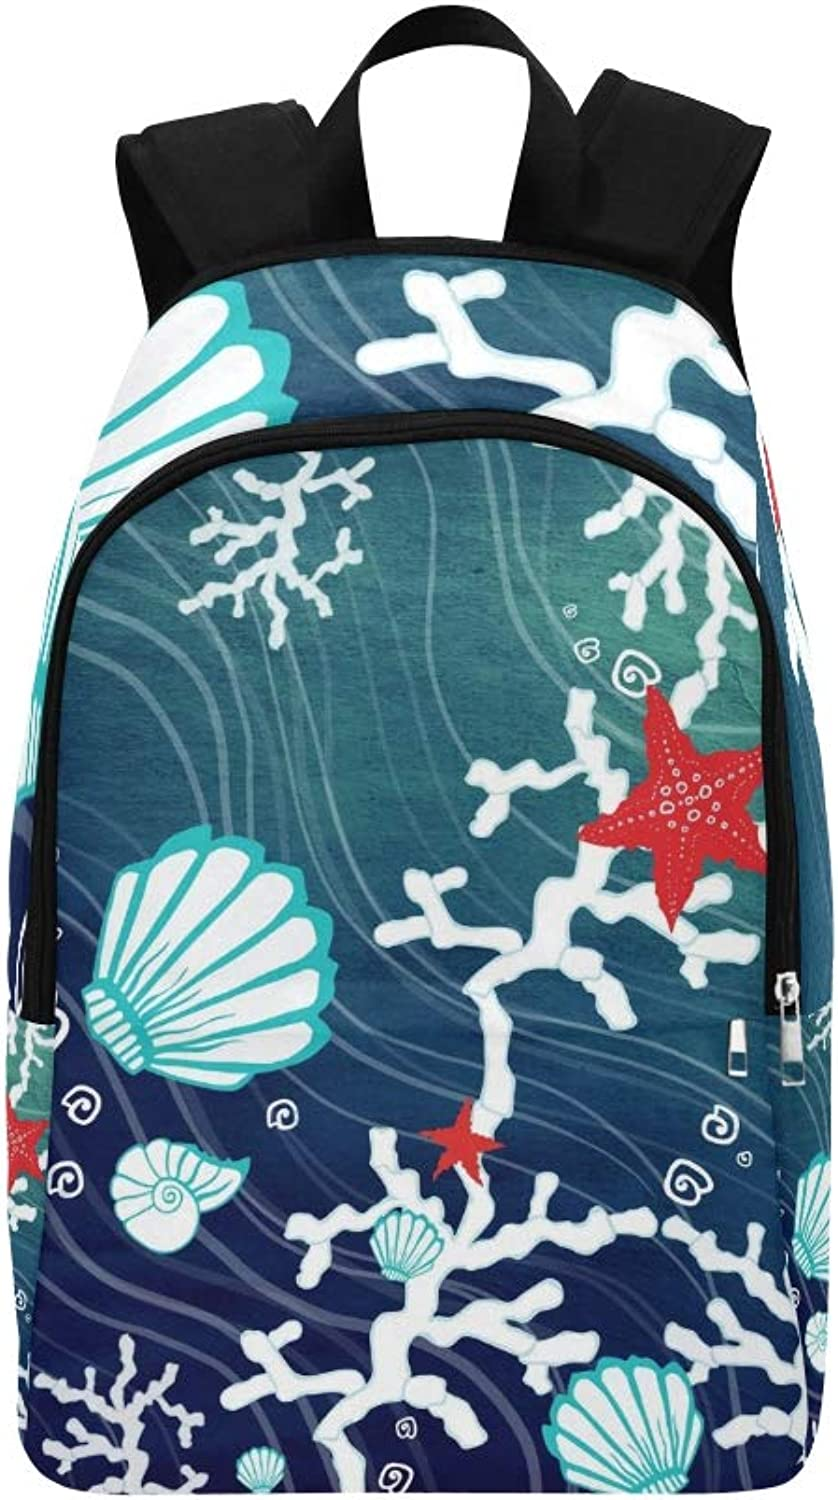 blueee Marine Stars Shell Coral Casual Daypack Travel Bag College School Backpack for Mens and Women